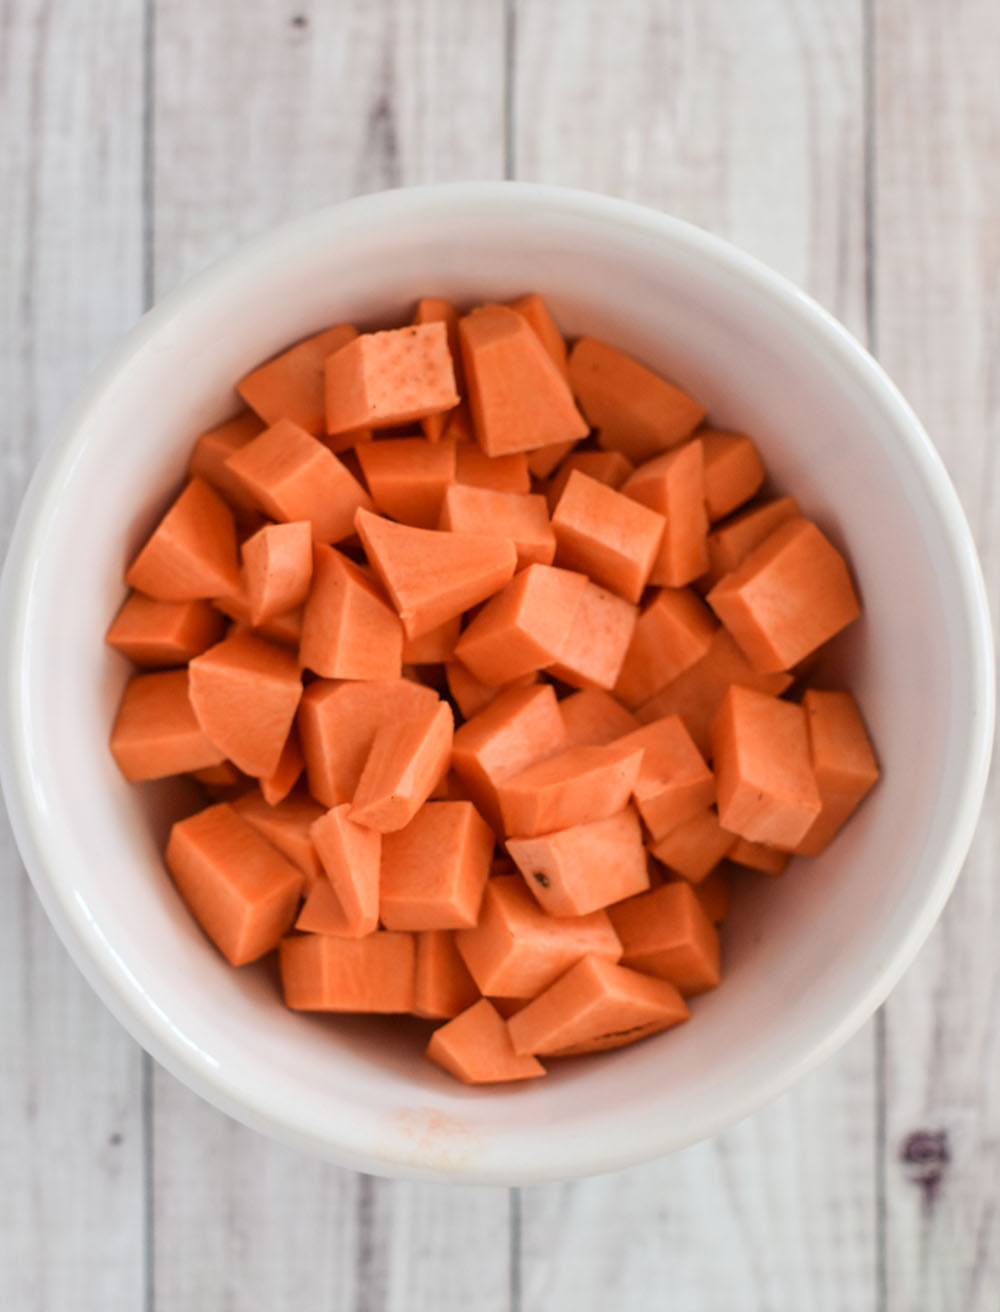 chopped sweet potato in a bowl